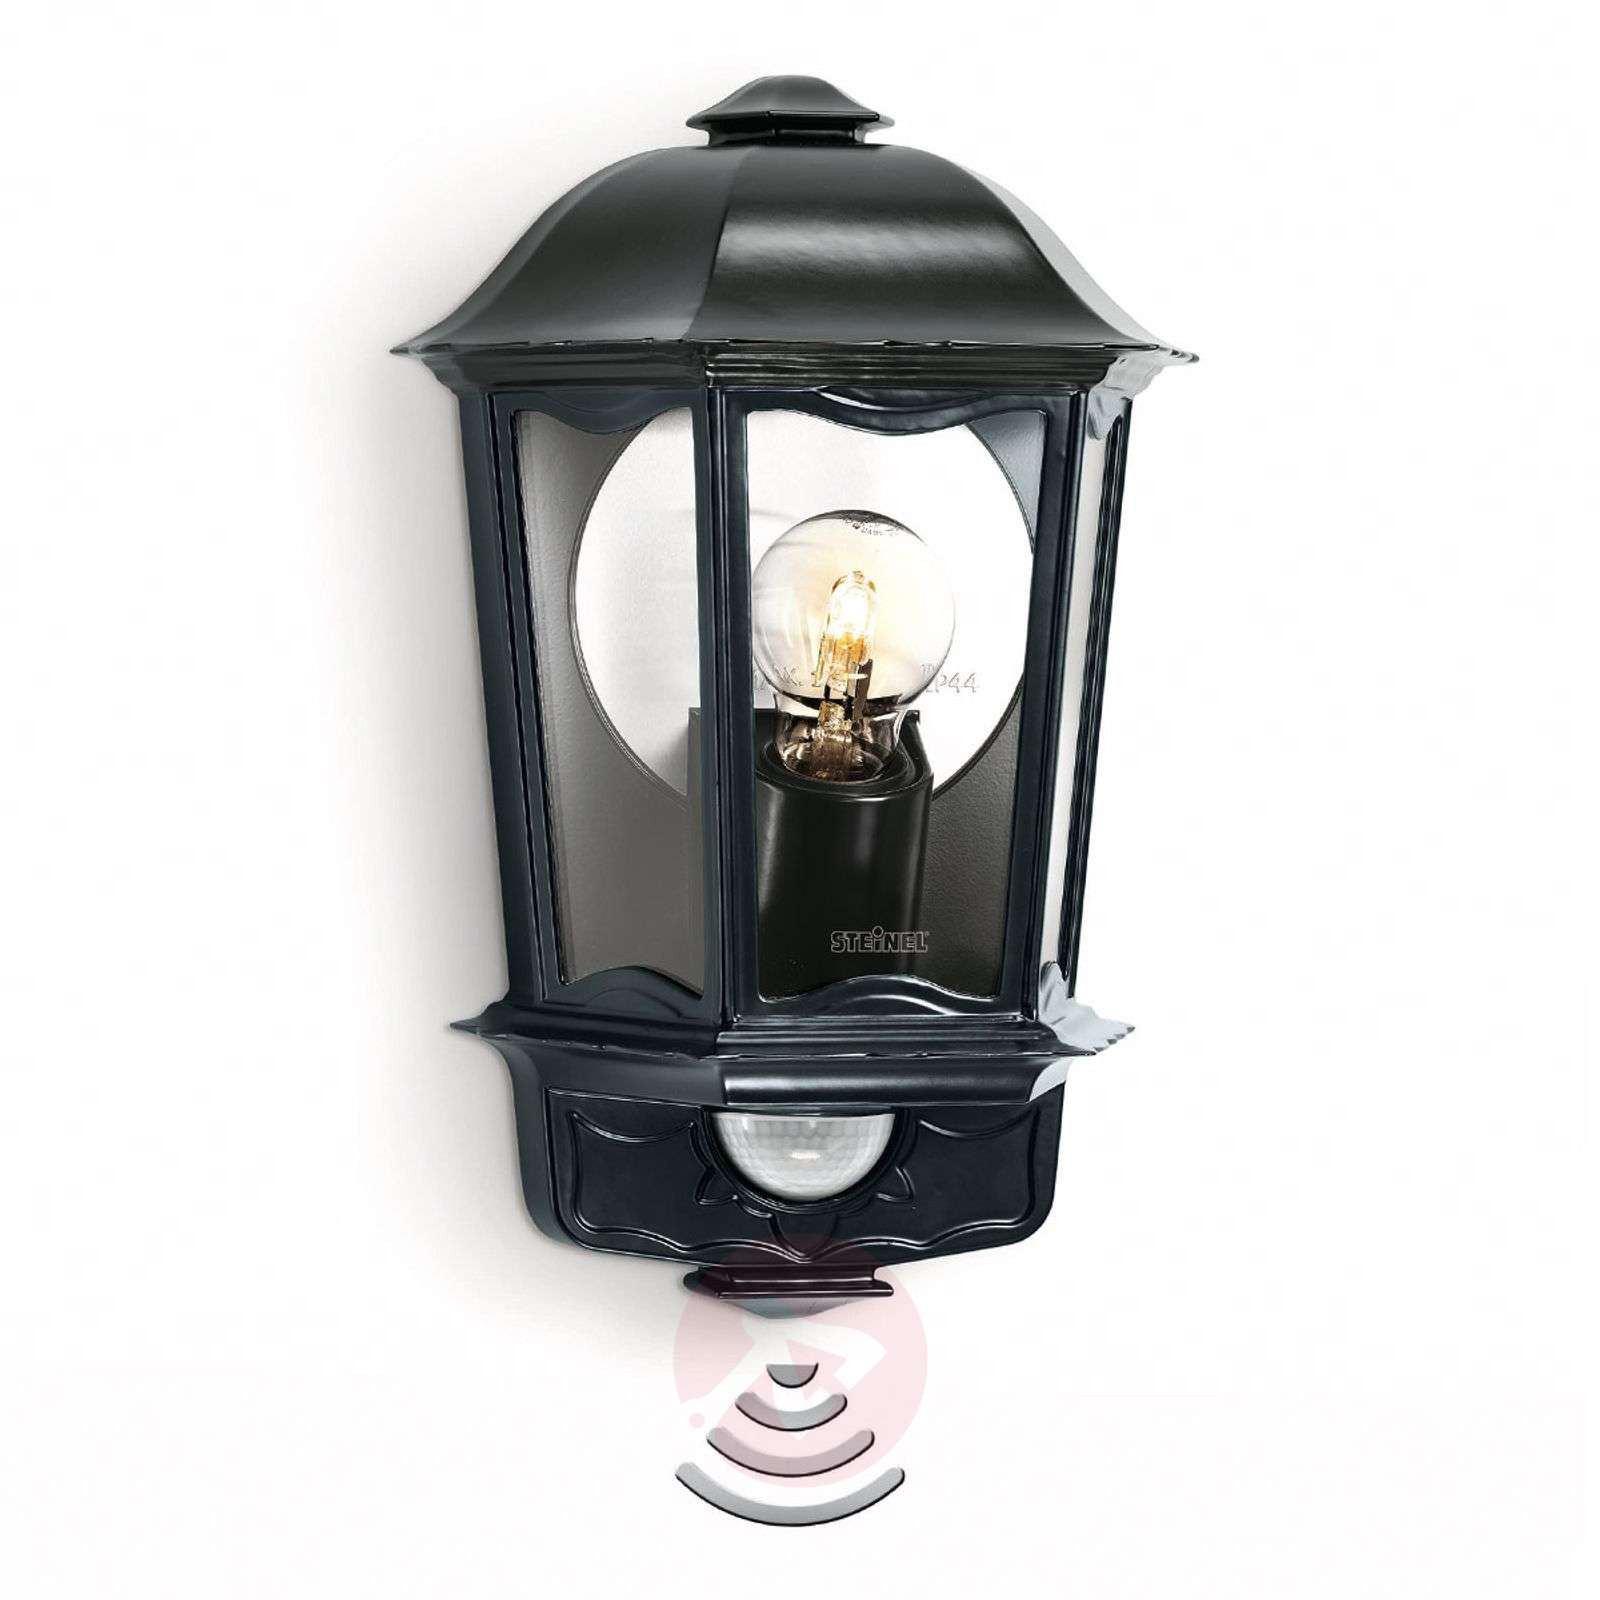 steinel-l-190-s-outdoor-wall-light-with-sensor-8505043x-31 Stilvolle Steinel L 820 Led Ihf Dekorationen